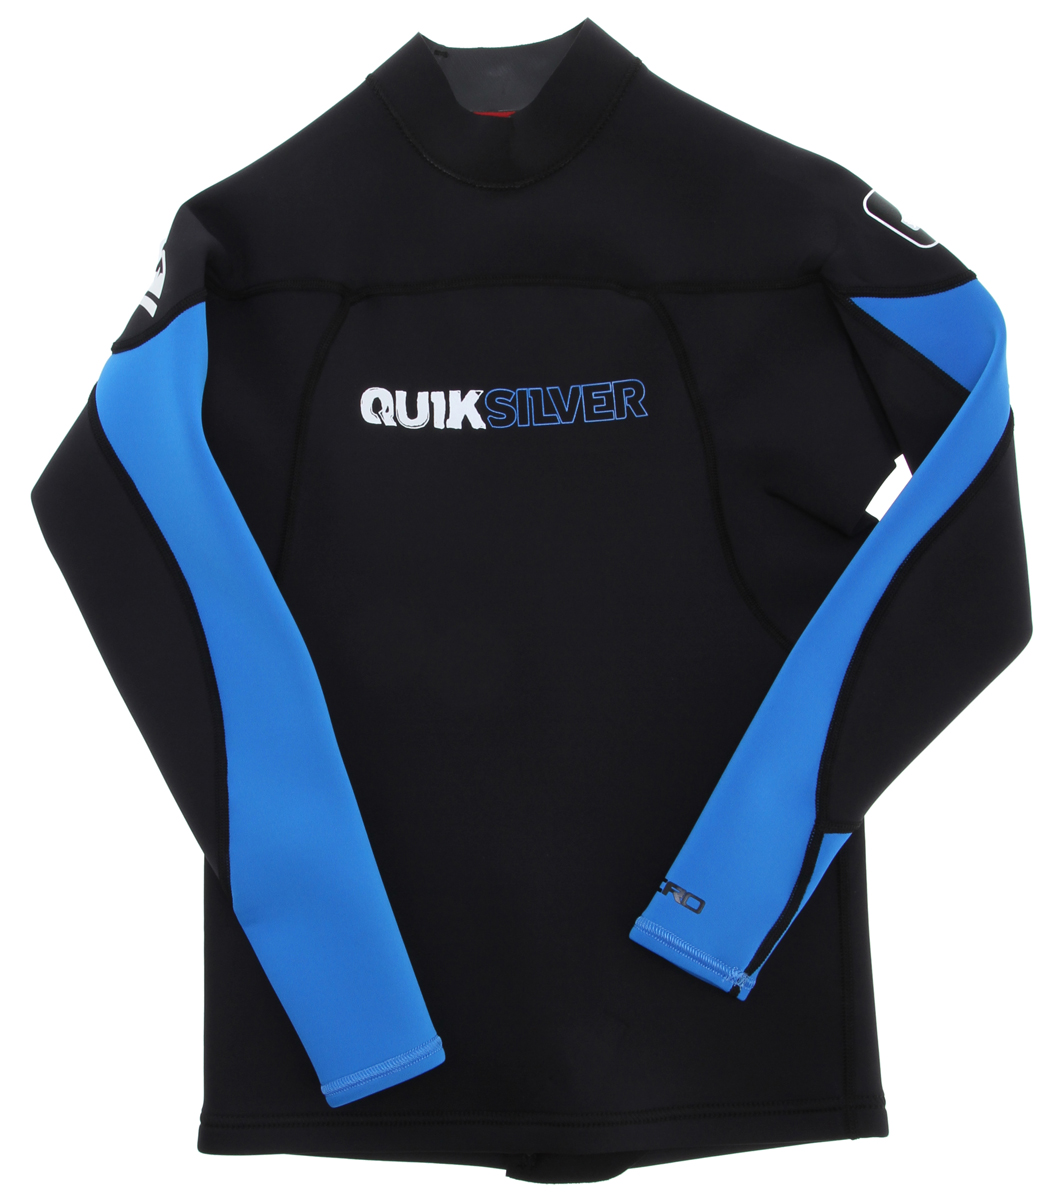 Surf Be sure to keep warm while looking cool when you put on a Quiksilver Synchro Sleeve Jacket. This 100% hyper-stretch II neoprene jacket has flatlock seams and a short lower back zip to make it easier to throw on as you're heading out to the beach to grab a big wave. The Quiksilver Jacket has a board shorts tie loop and will hold up to whatever action you're looking to tackle as you hit the water.Key Features of the Quiksilver Synchro 1.5mm Long Sleeve Jacket: 100% Hyperstretch II Neoprene Flatlock seams Short lower back zip for easy entry Boardshorts tie loop Imported - $41.95